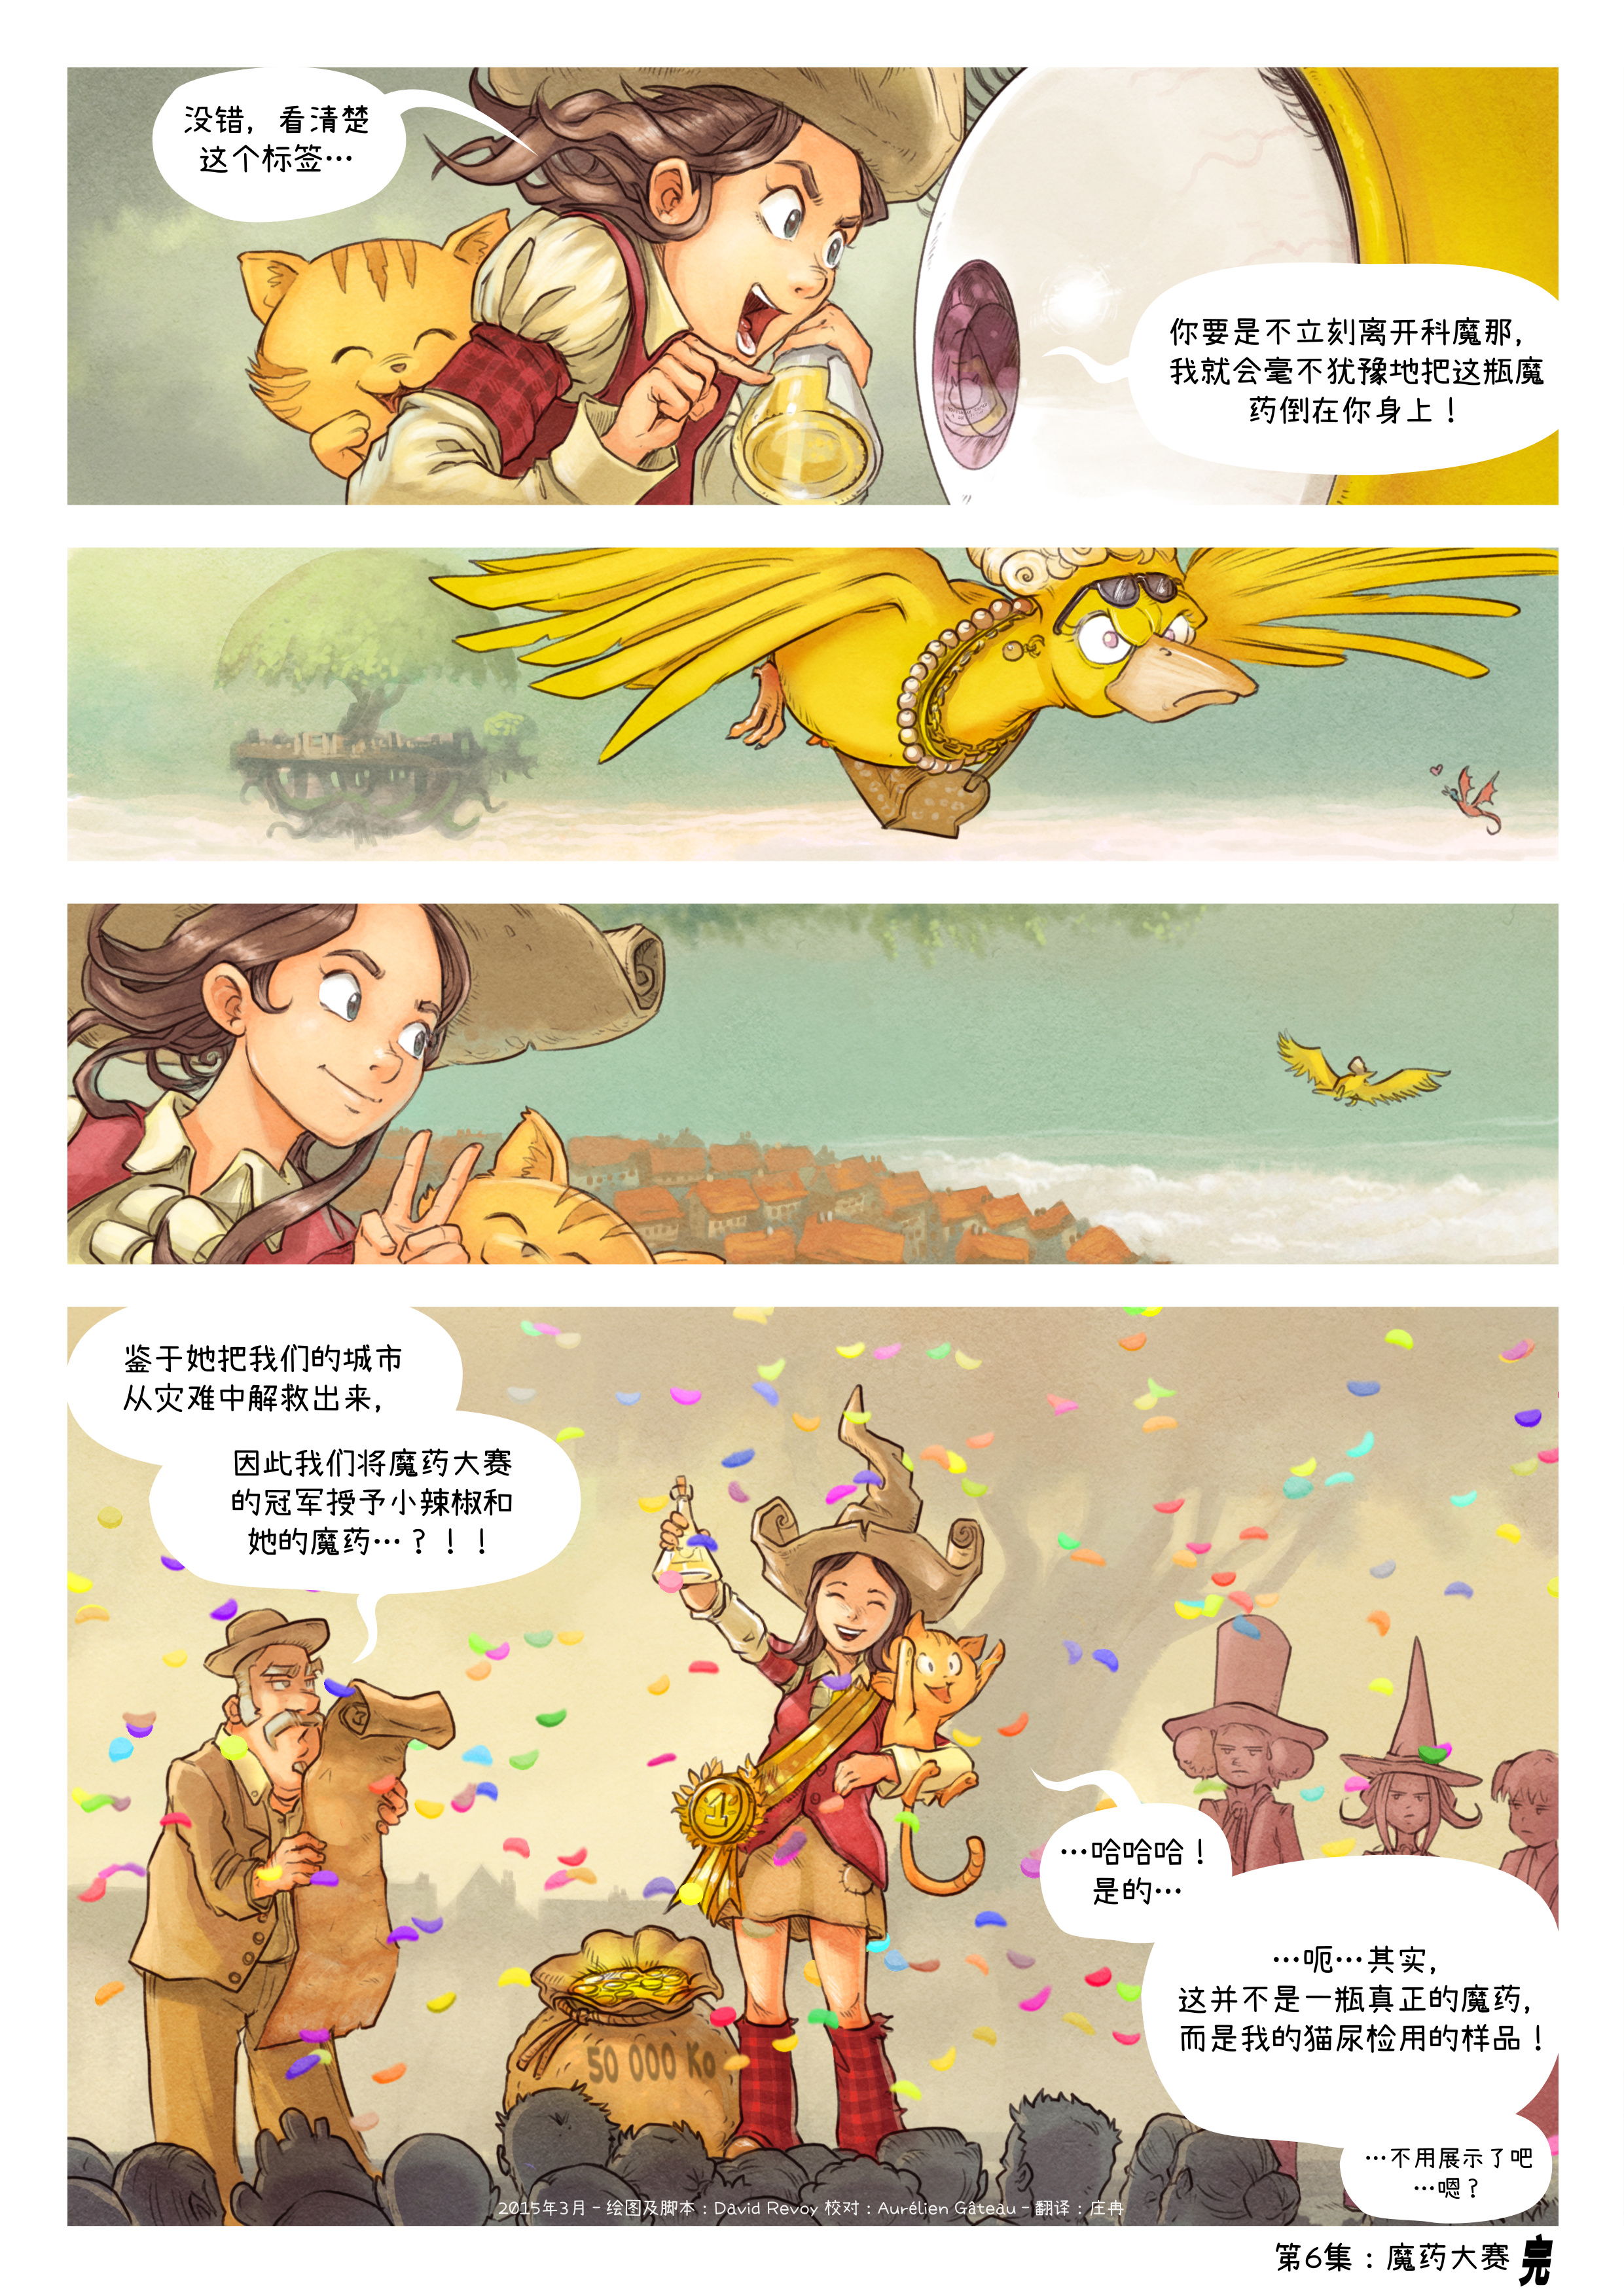 A webcomic page of Pepper&Carrot, 漫画全集 6 [cn], 页面 9